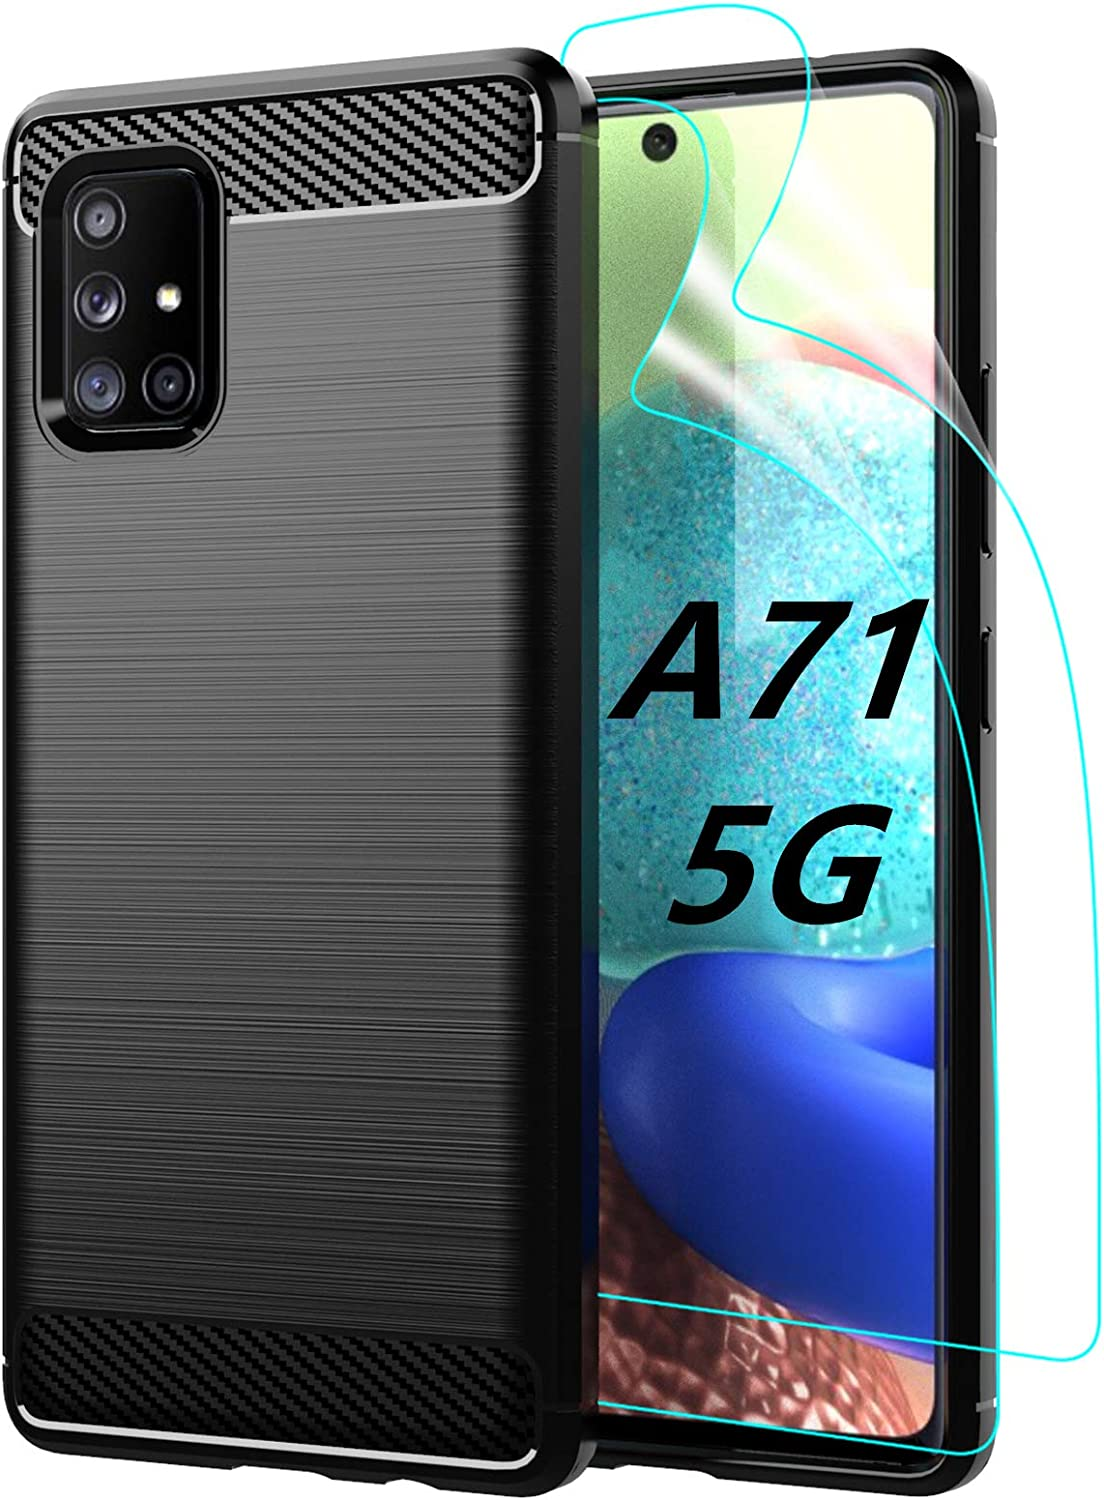 Amazon Com Samsung Galaxy A71 5g Case With 2 Pcs Hd Screen Protector Protective Phone Cover Shockproof Soft Tpu Cases For Galaxy A71 5g Black Electronics